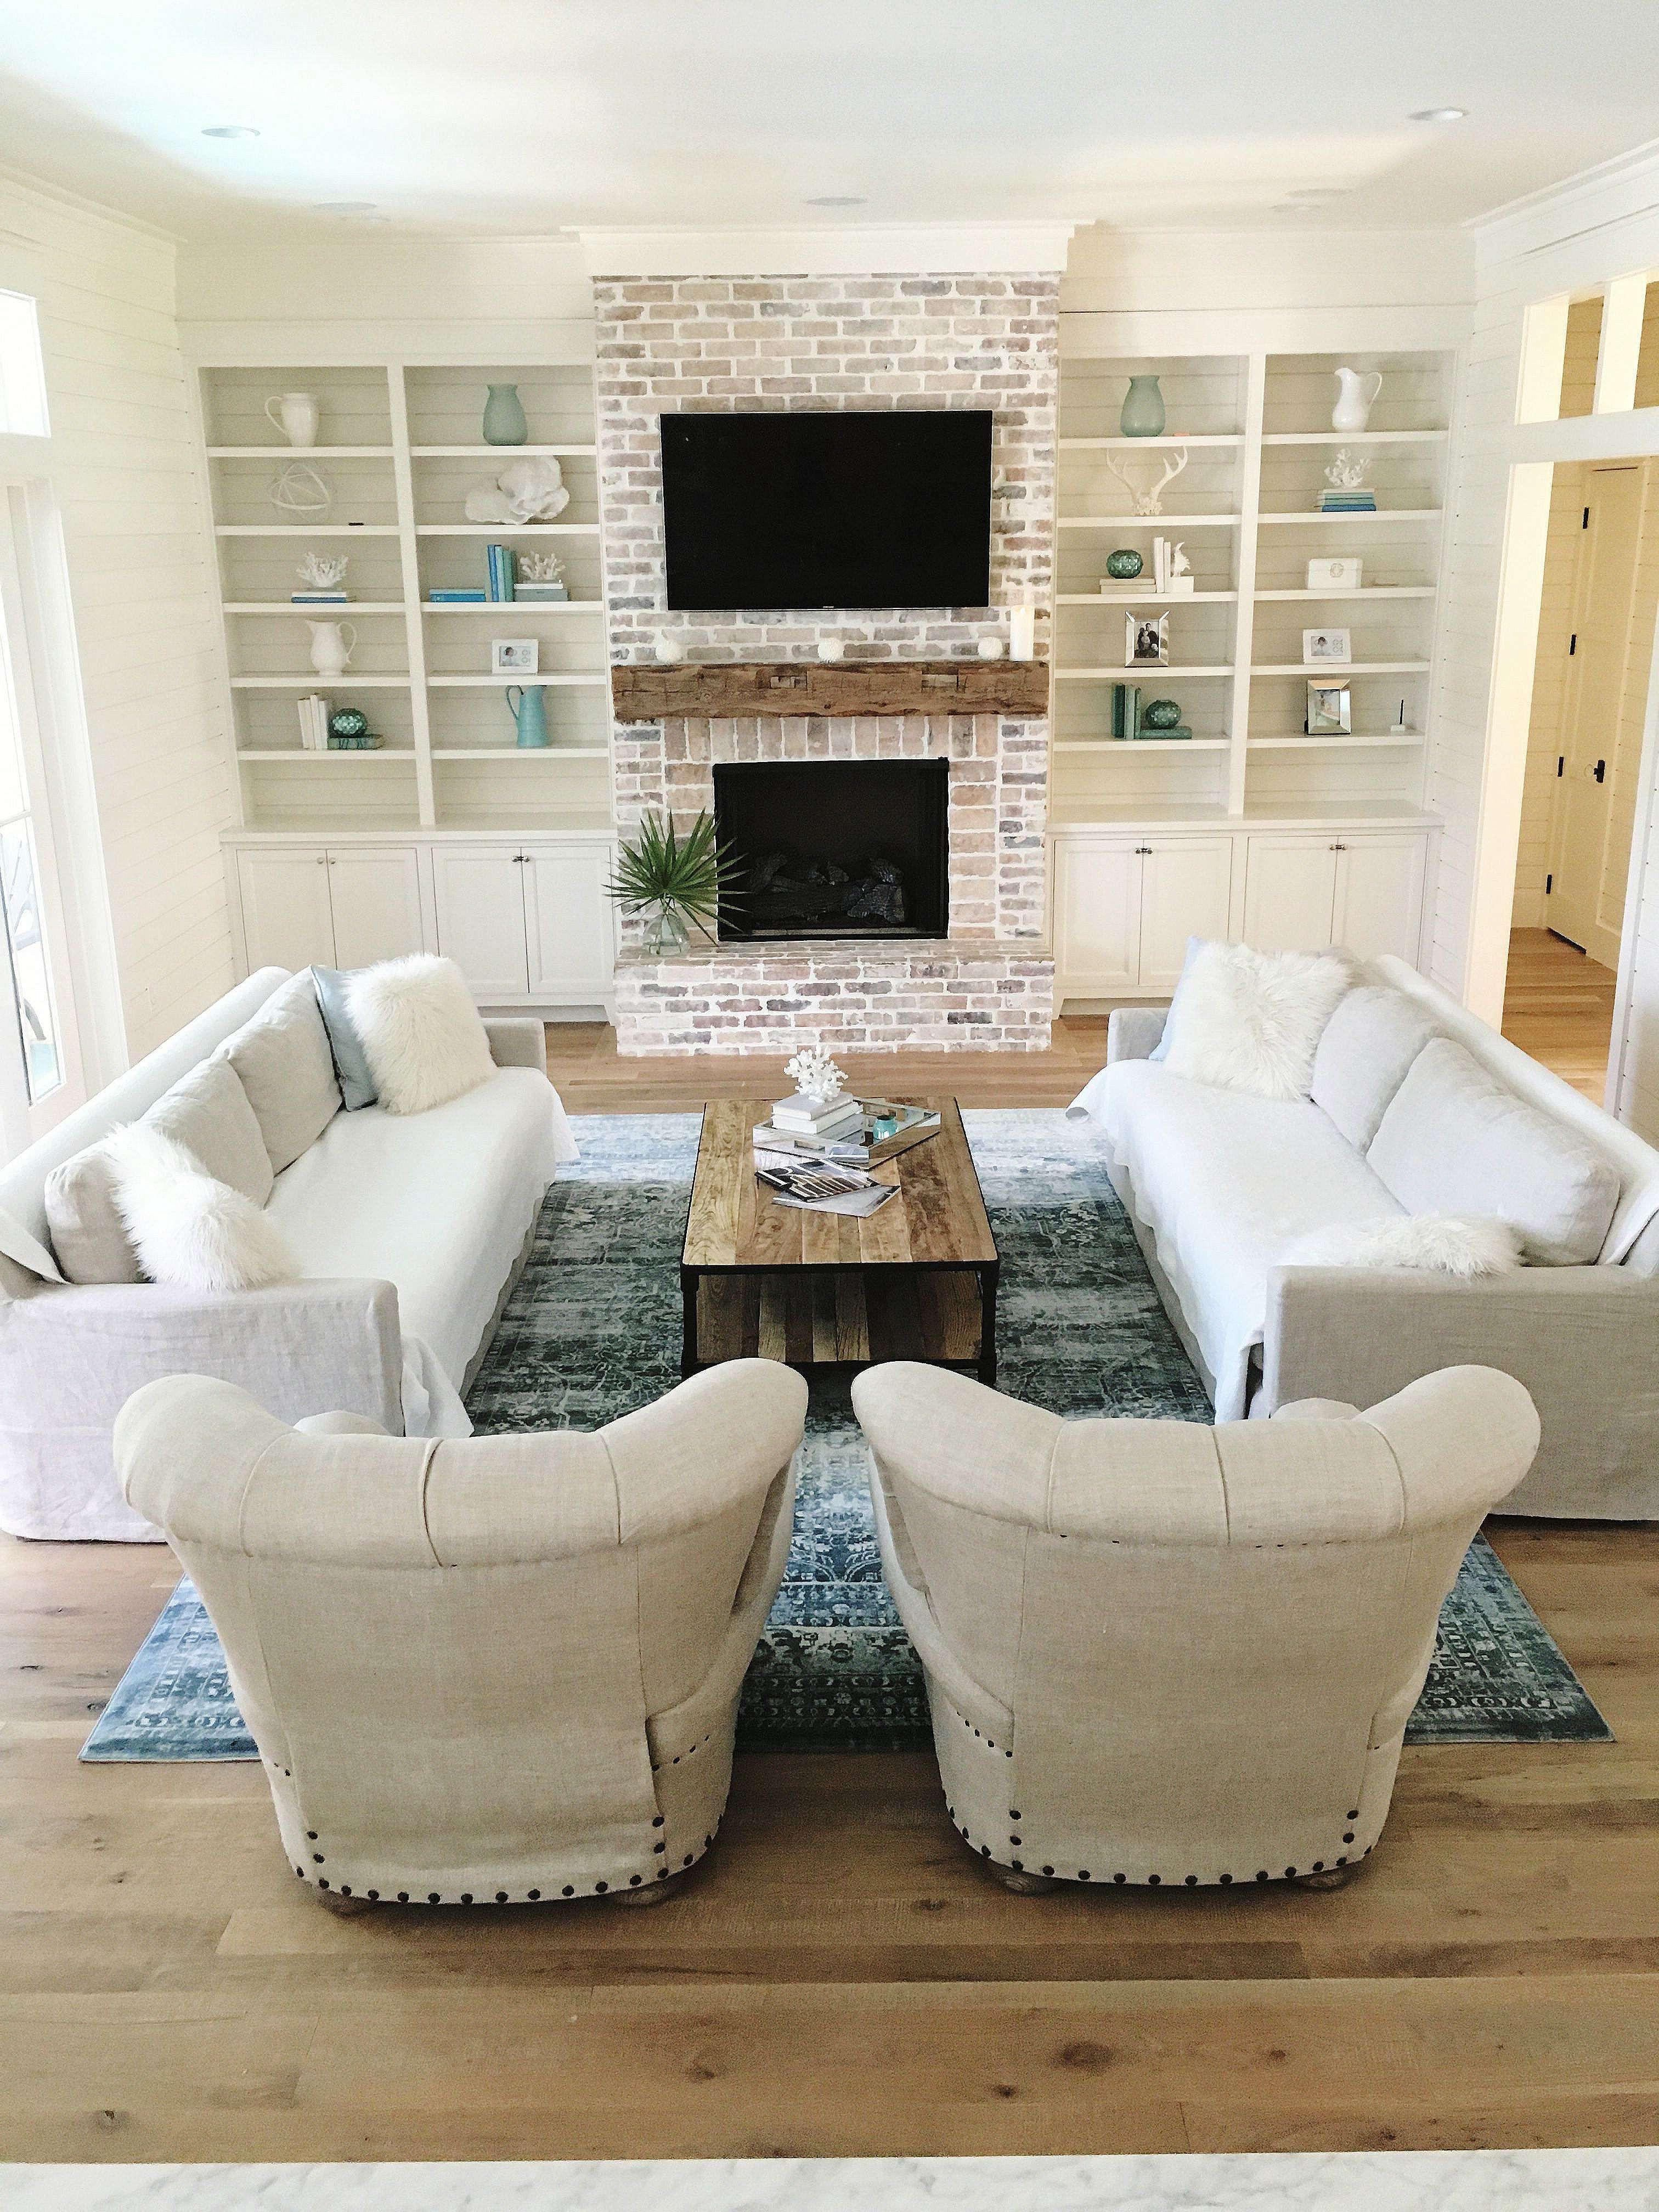 how to install hardwood floors of unique of diy wood flooring images artsvisuelscaribeens com with plywood for the home pinterest diy kitchen island with stools inspirational diy kitchen island table diy kitchen floor ideas elegant kitchen decor items